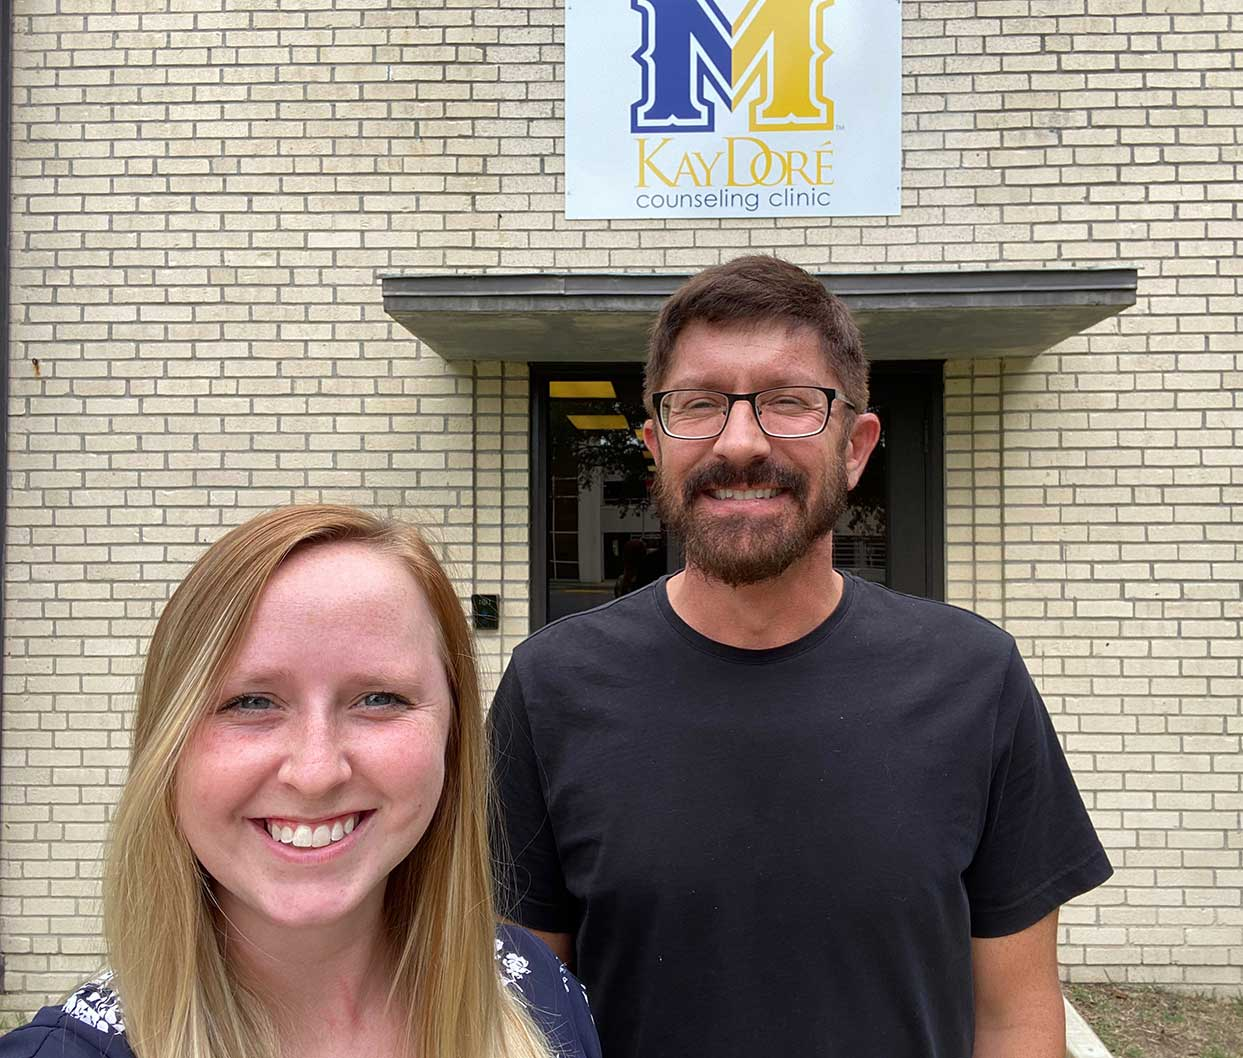 Caitlyn Kudrecky (left) and Dr. Kevin Yaudes.